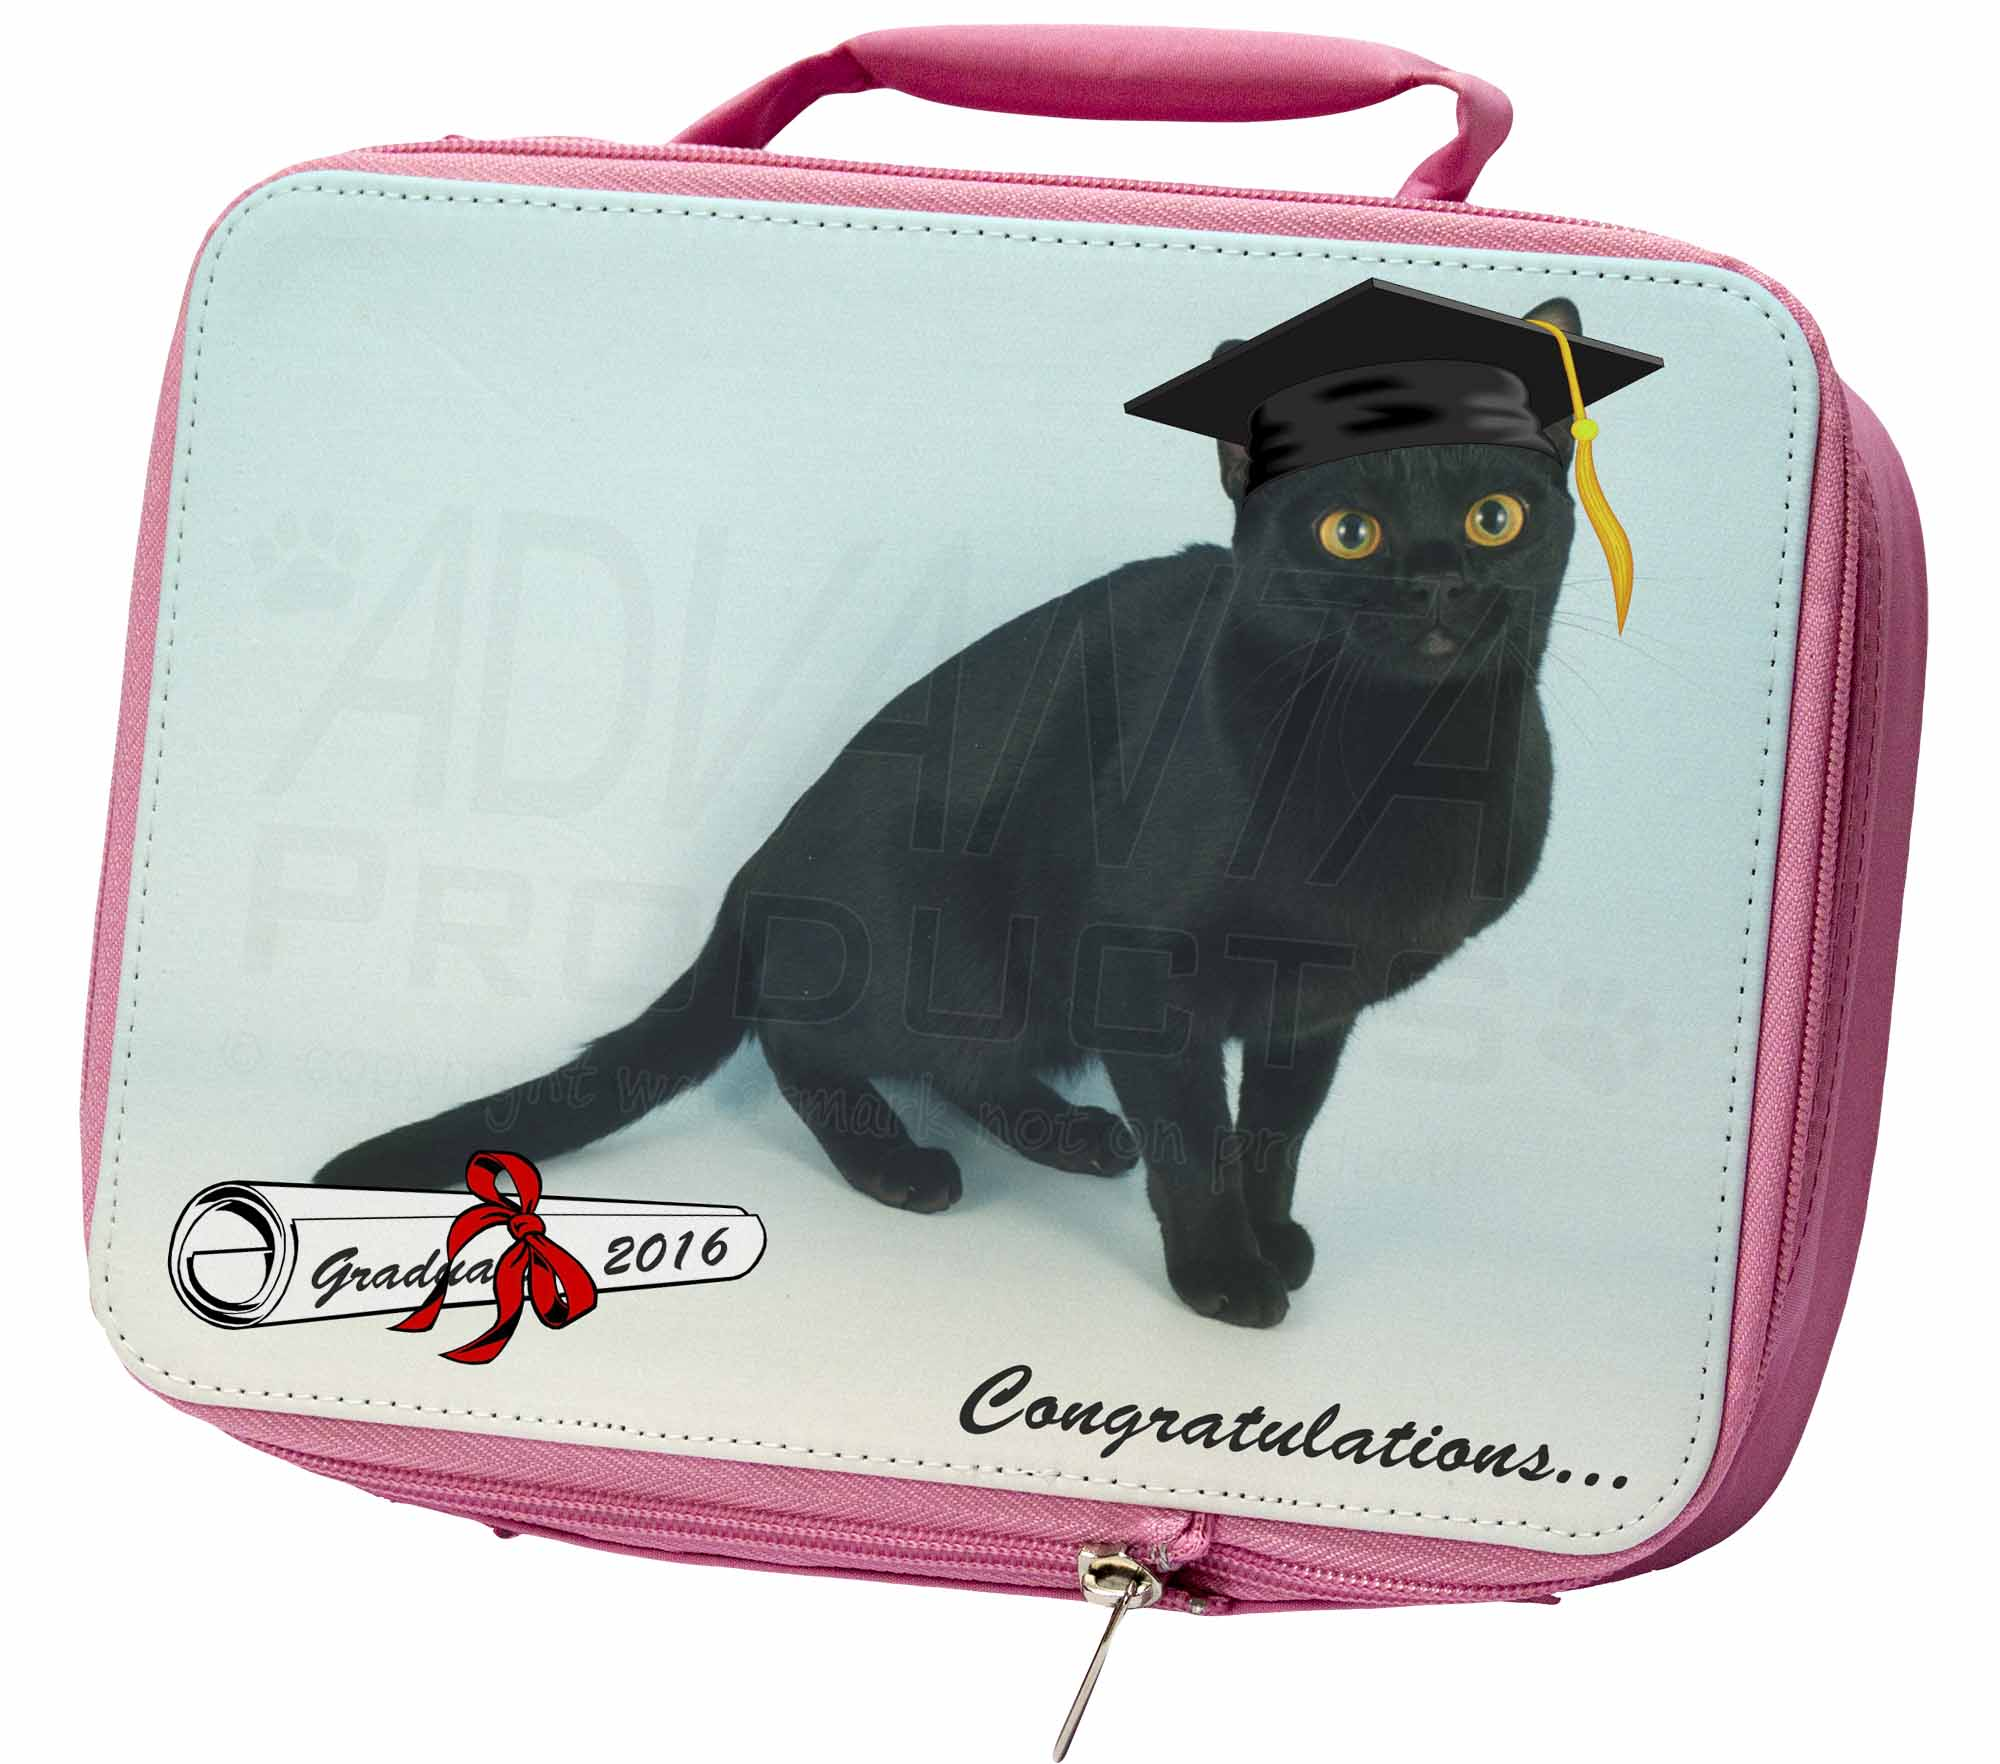 Graduation Black Cat 'Congratulations 2016' Insulated Pink School Lun, GRAD5LBP